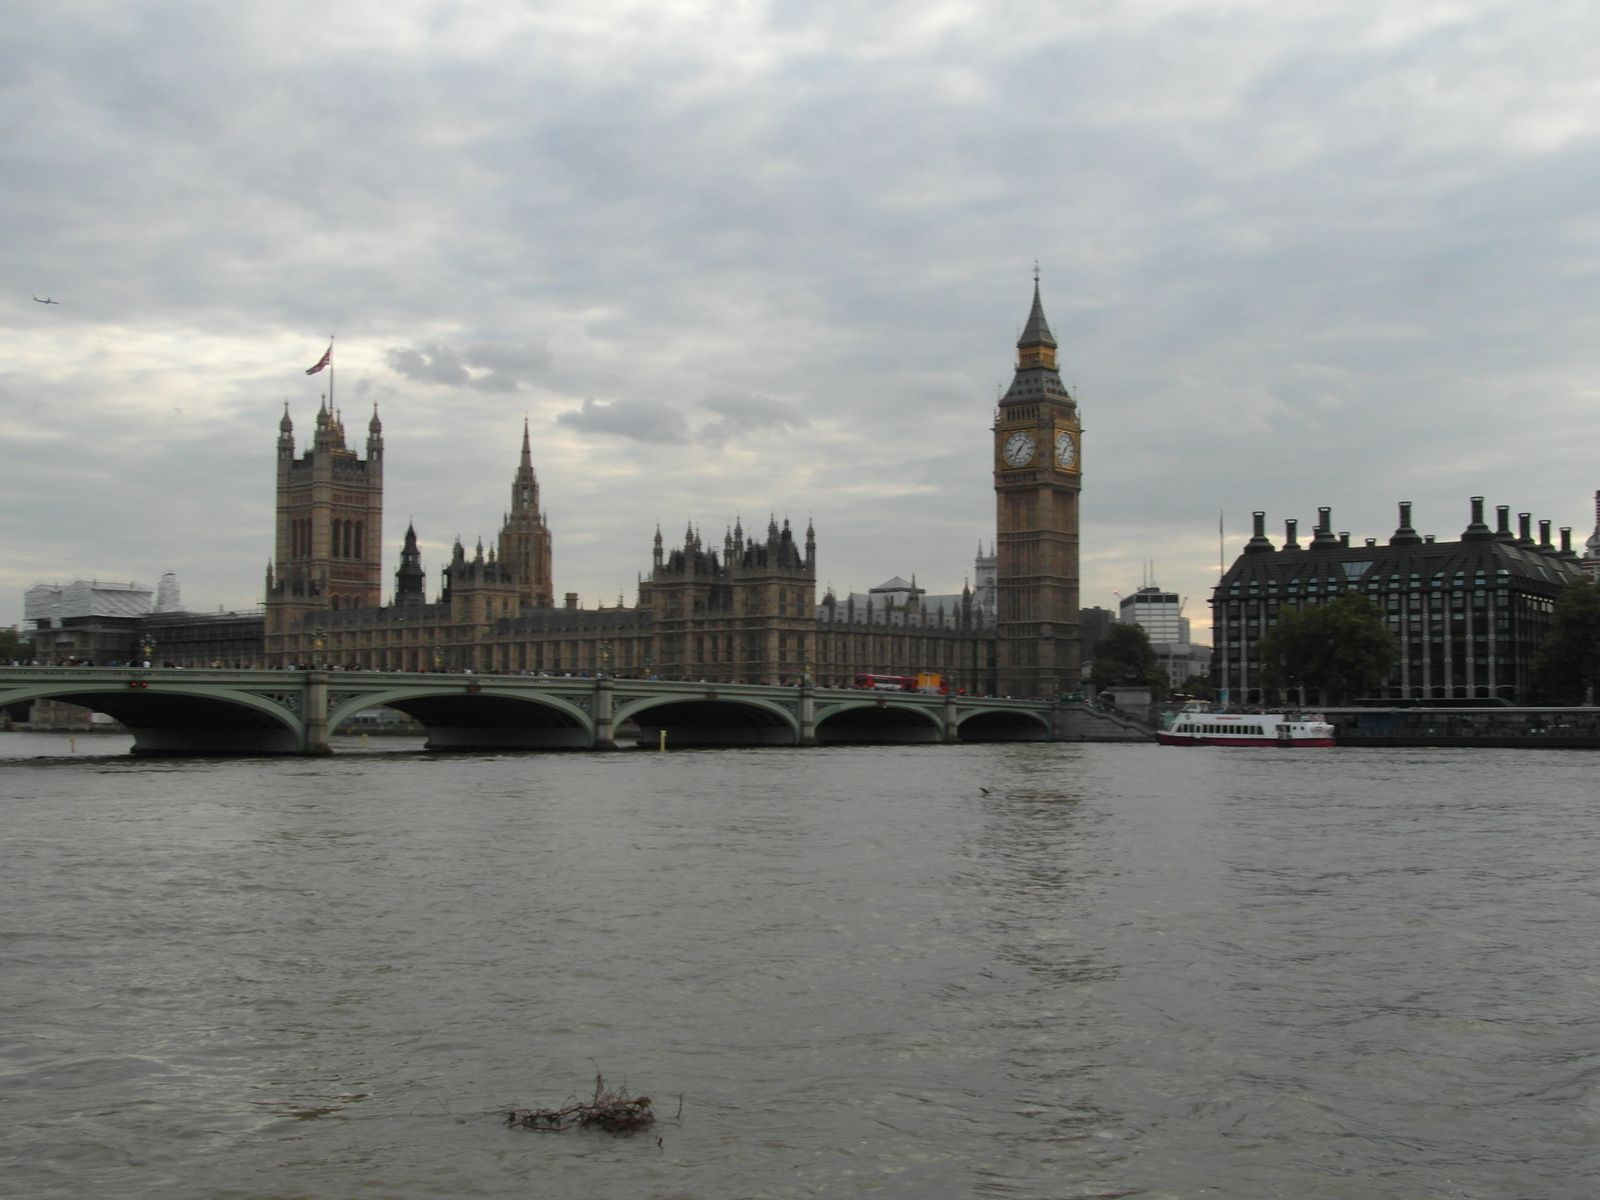 Westminster Bridge, La Maison du Parlement et Big ben